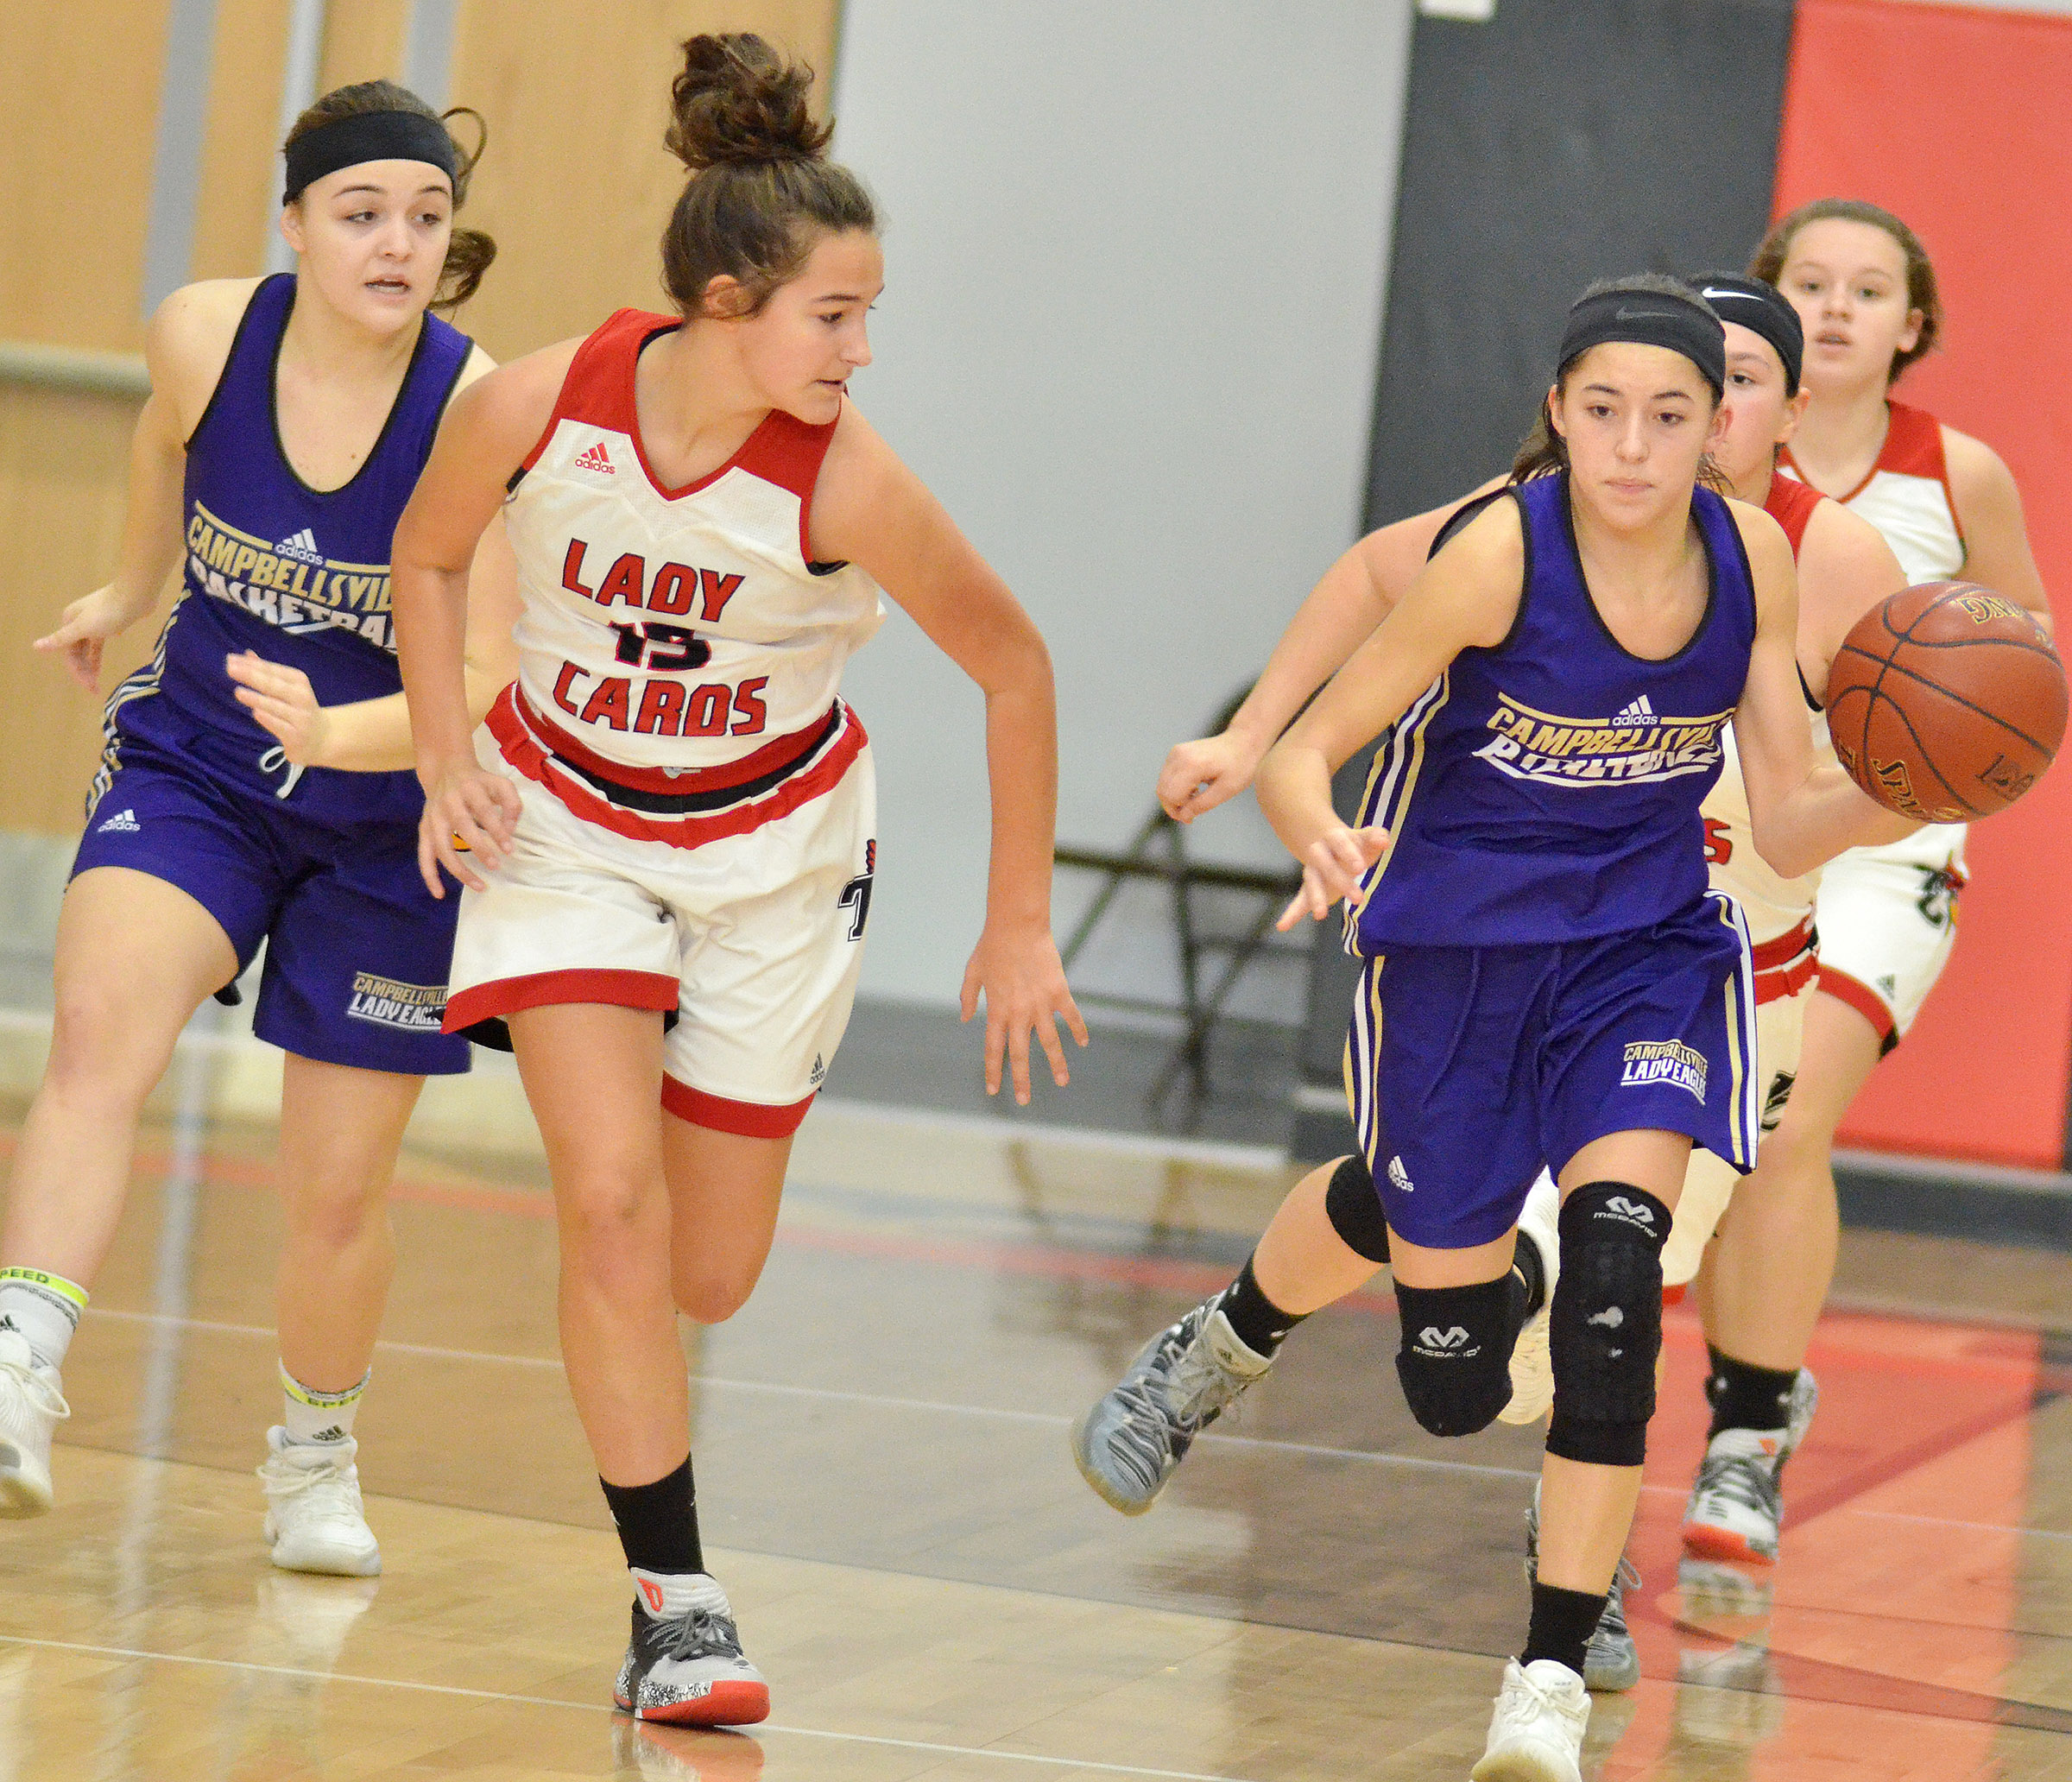 Campbellsville Middle School eighth-grader Kaylyn Smith drives the ball.